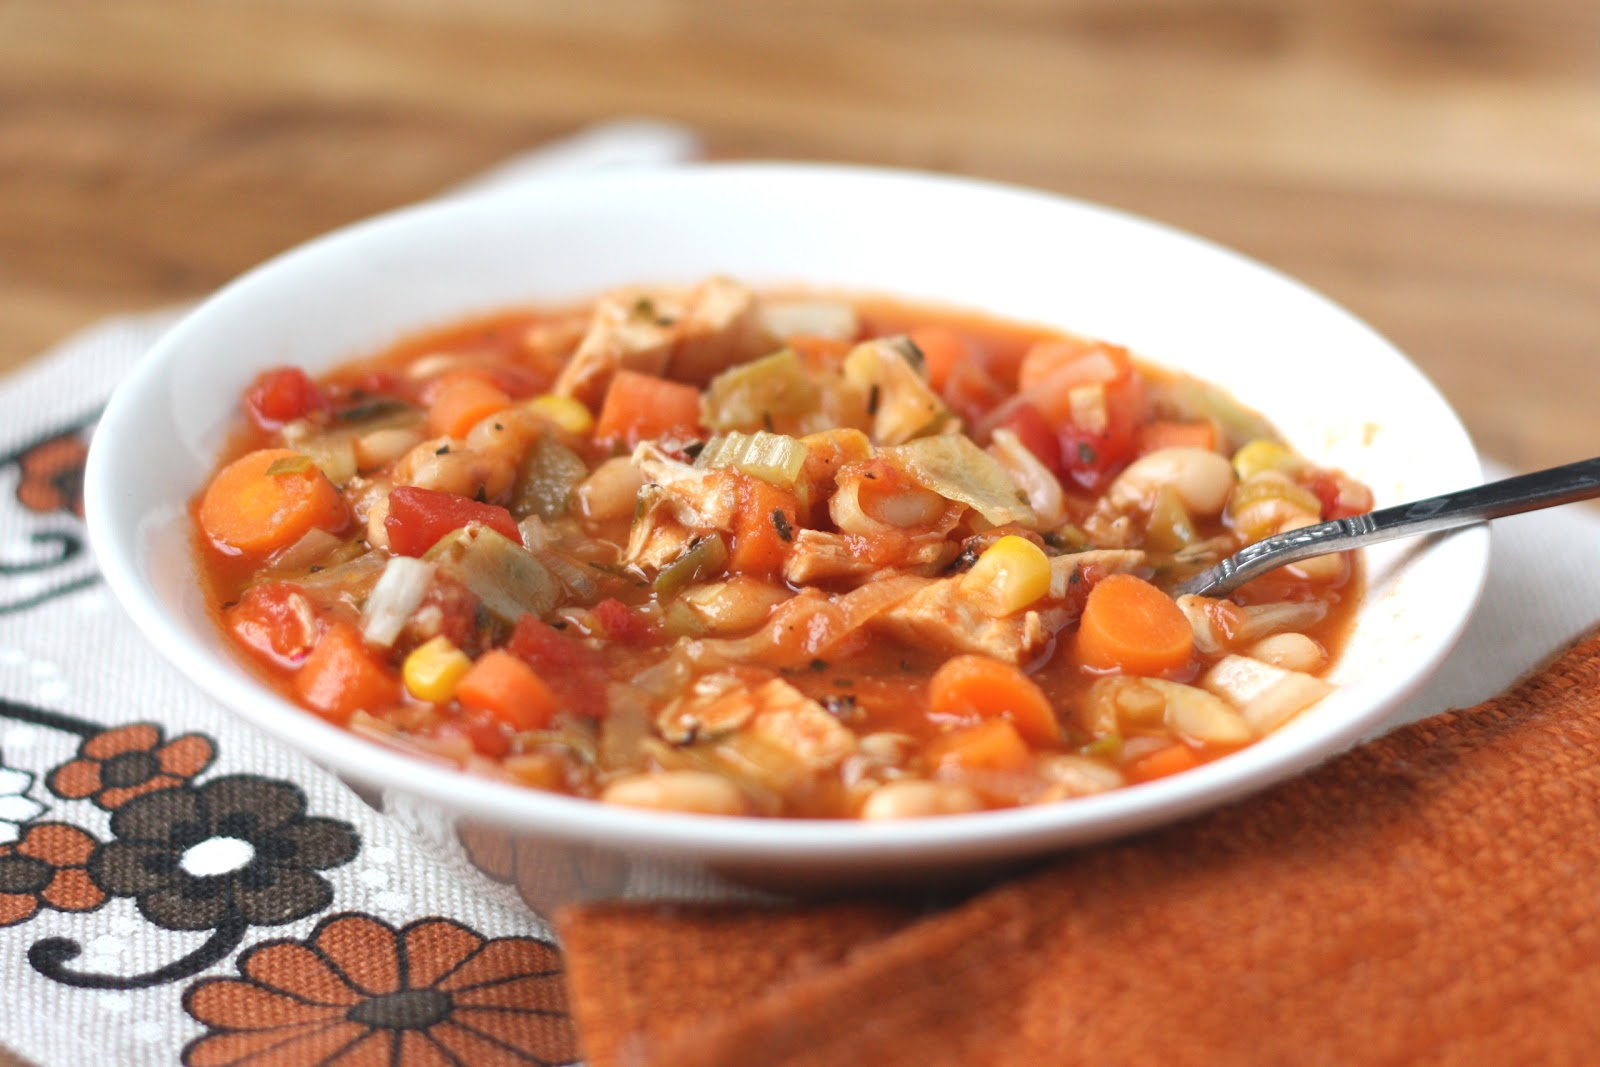 Barefeet In The Kitchen: Italian Chicken and Vegetable Soup